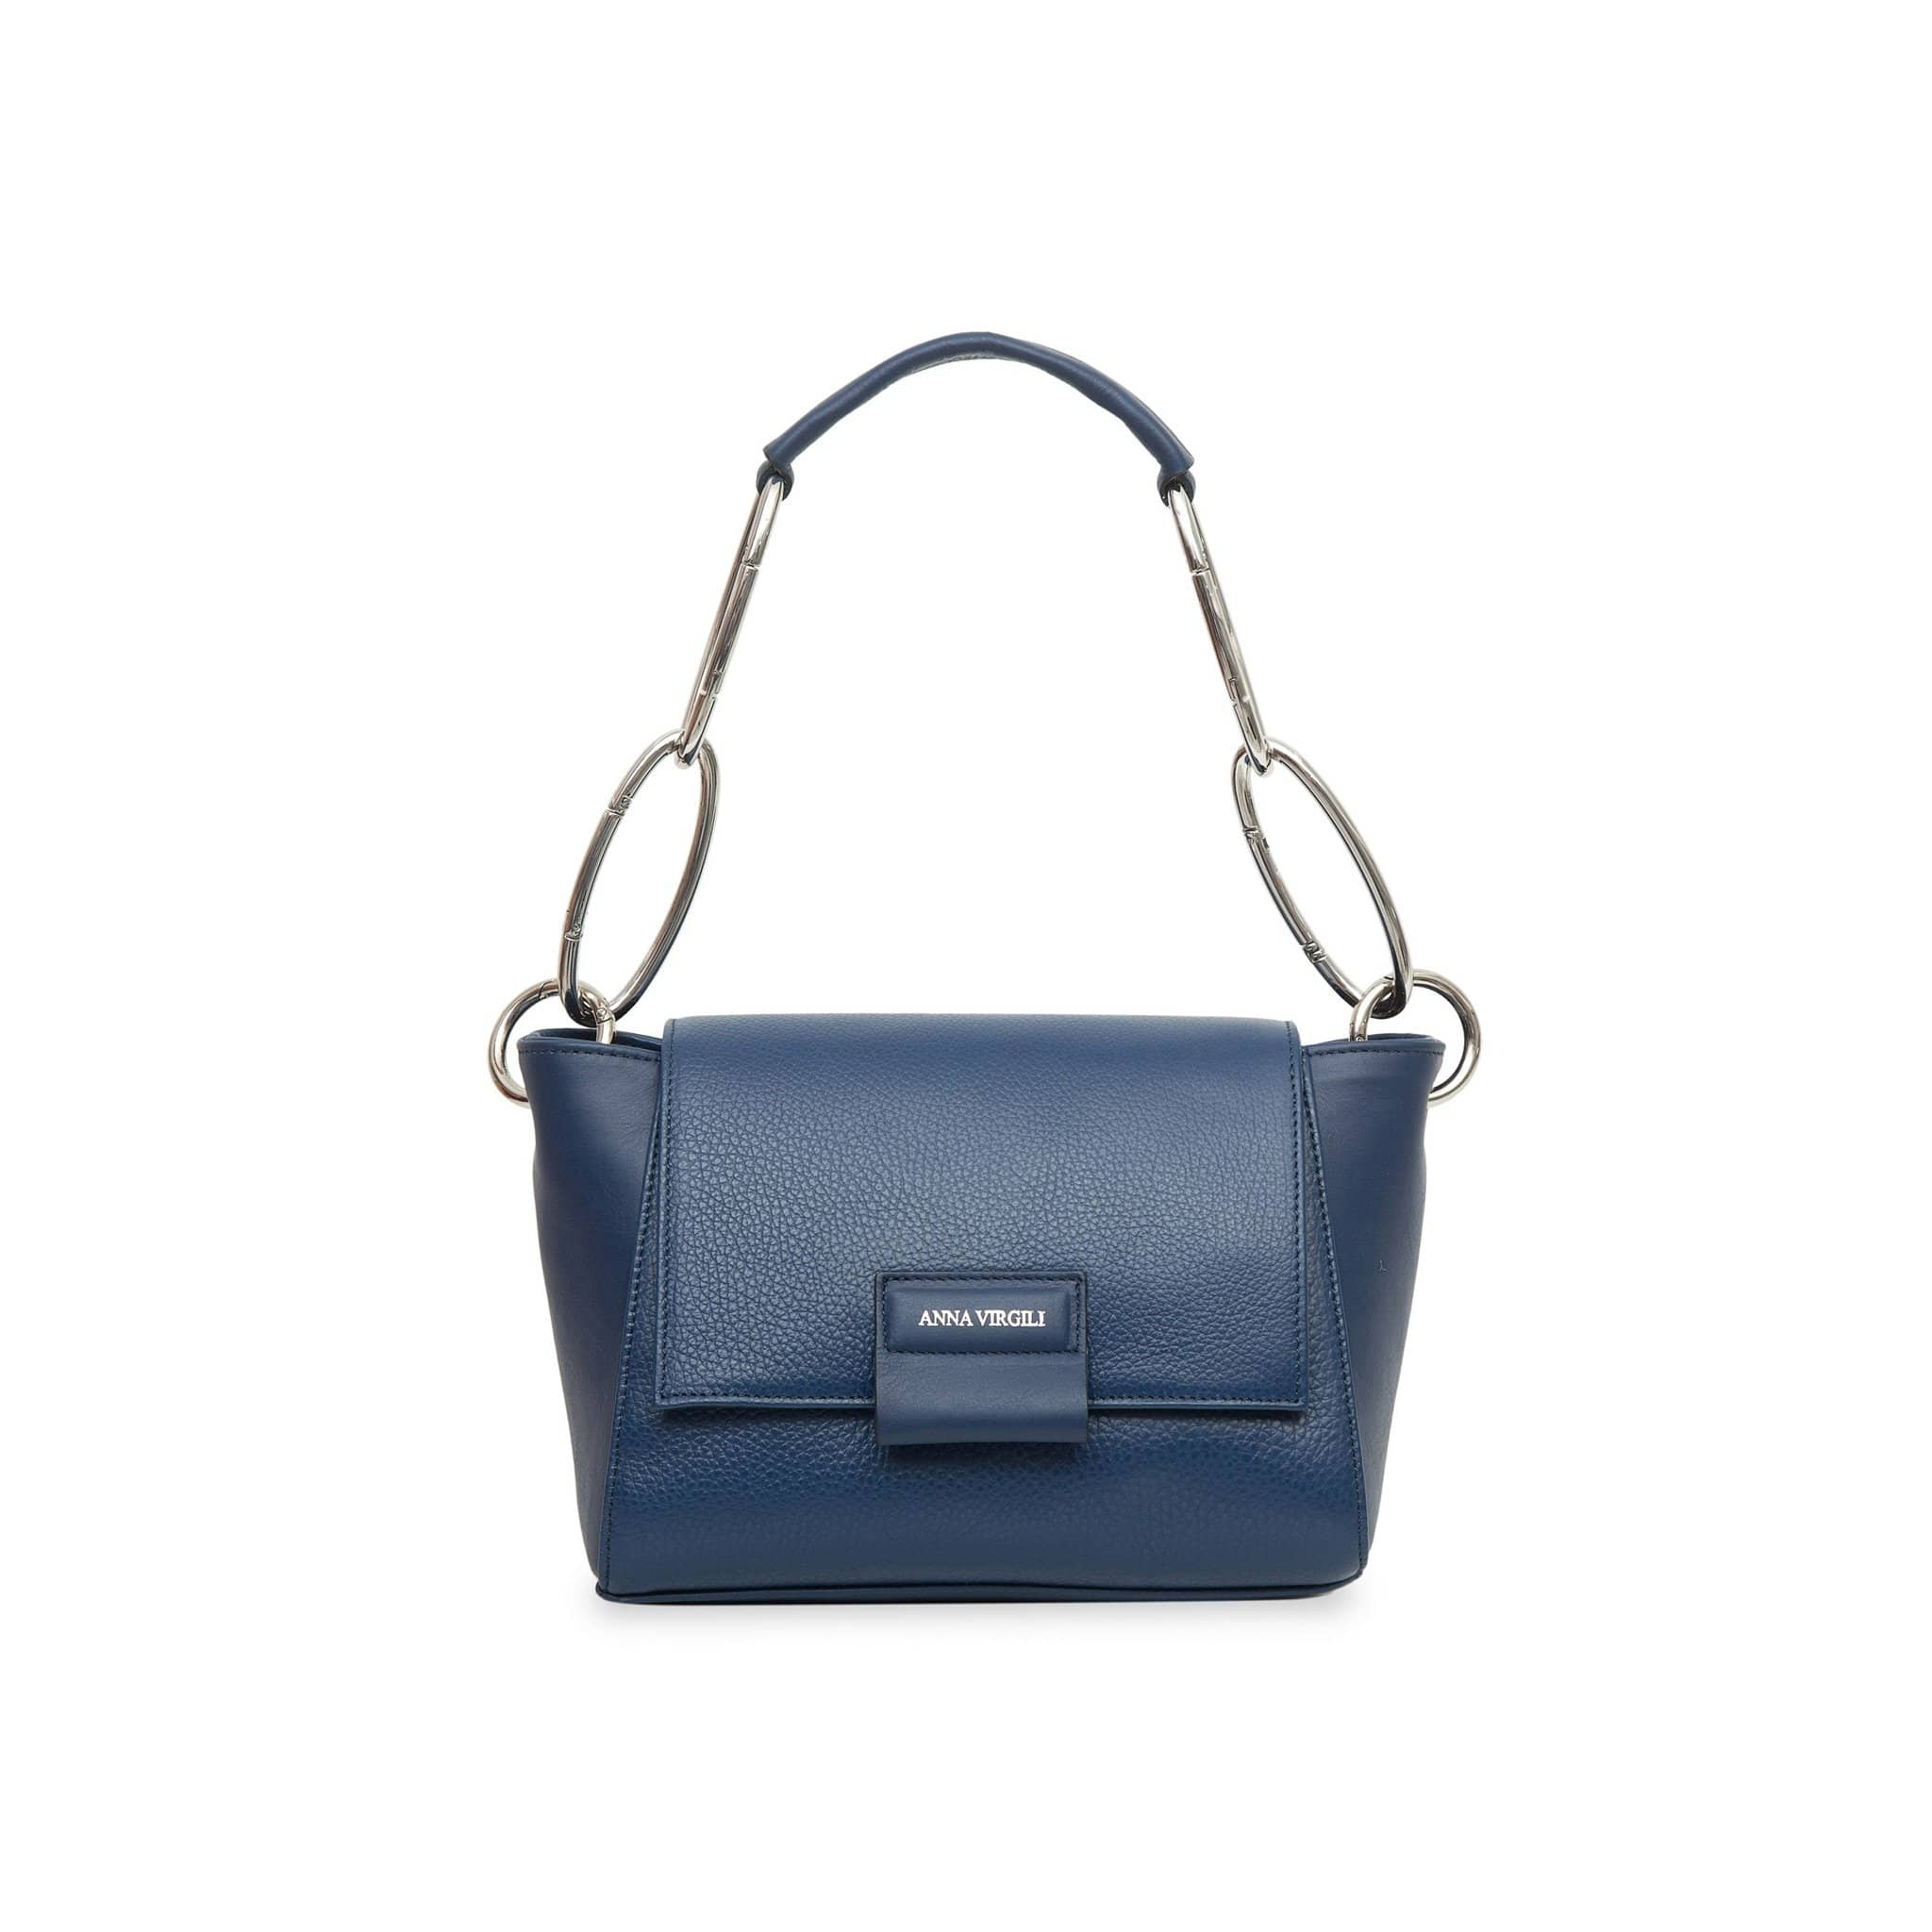 Cabiria Mini Chain Leather Handbag - Blue